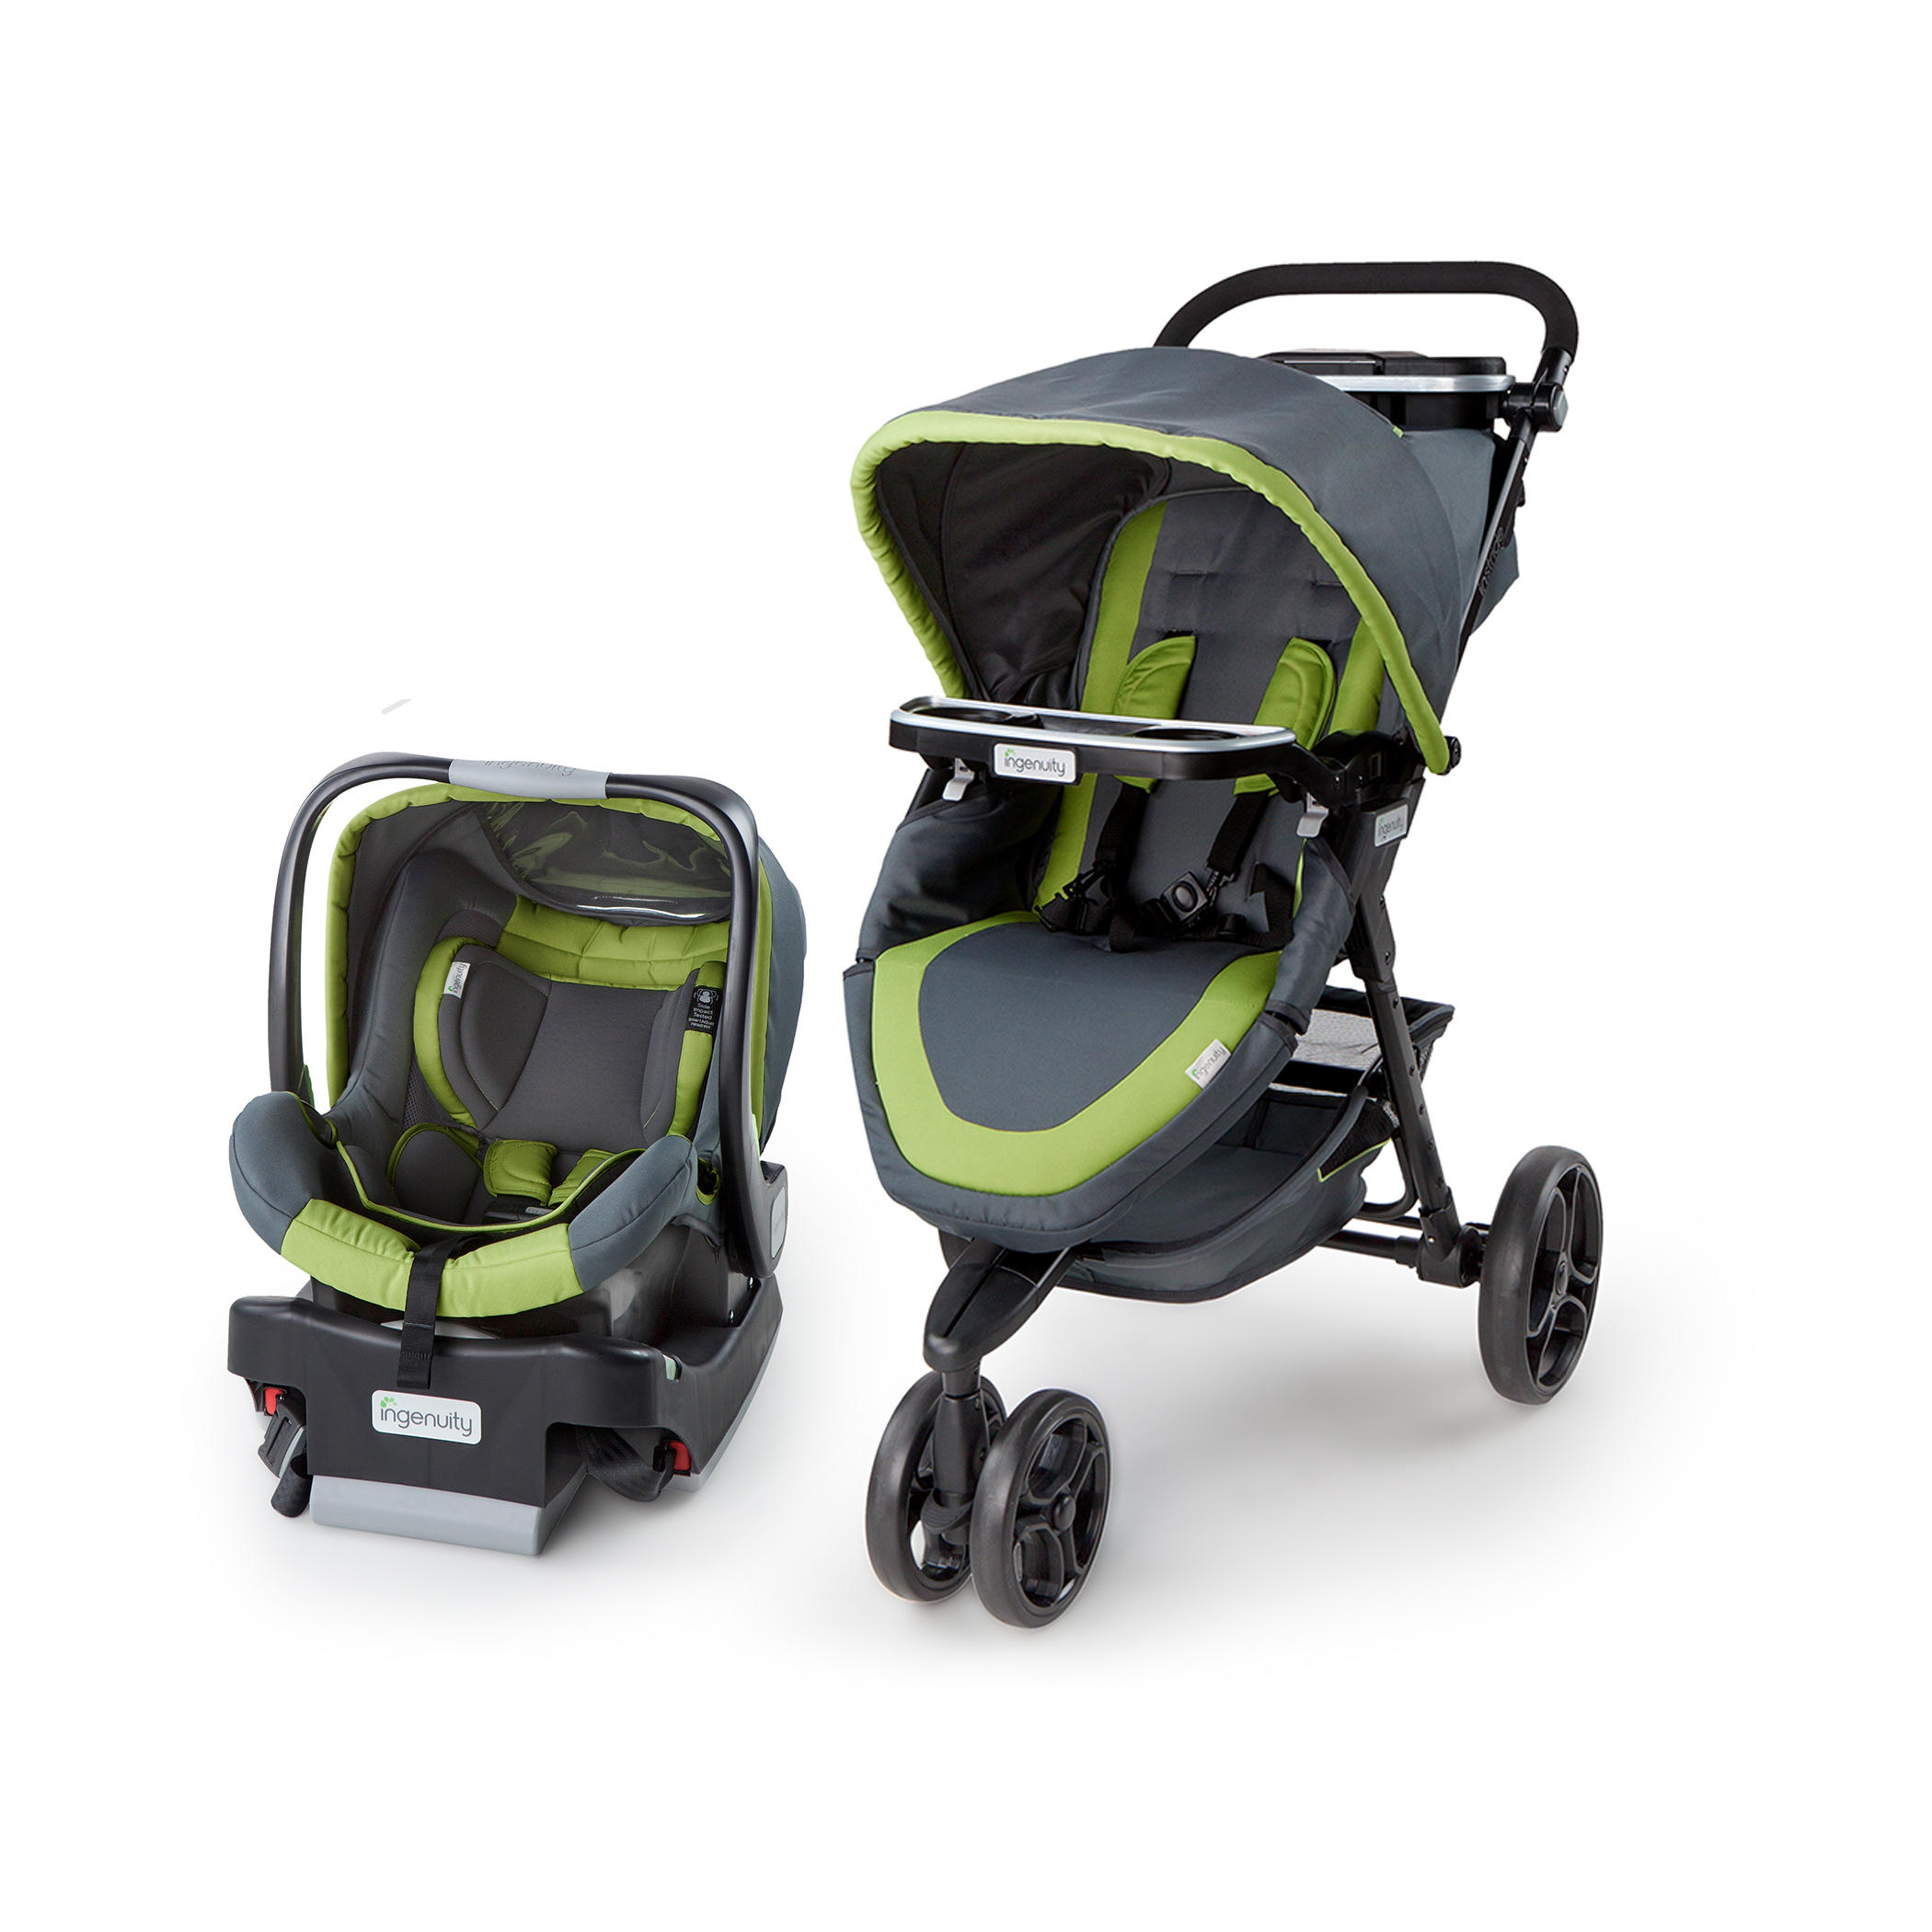 Ingenuity InStride Easy Up Travel System - Bristol